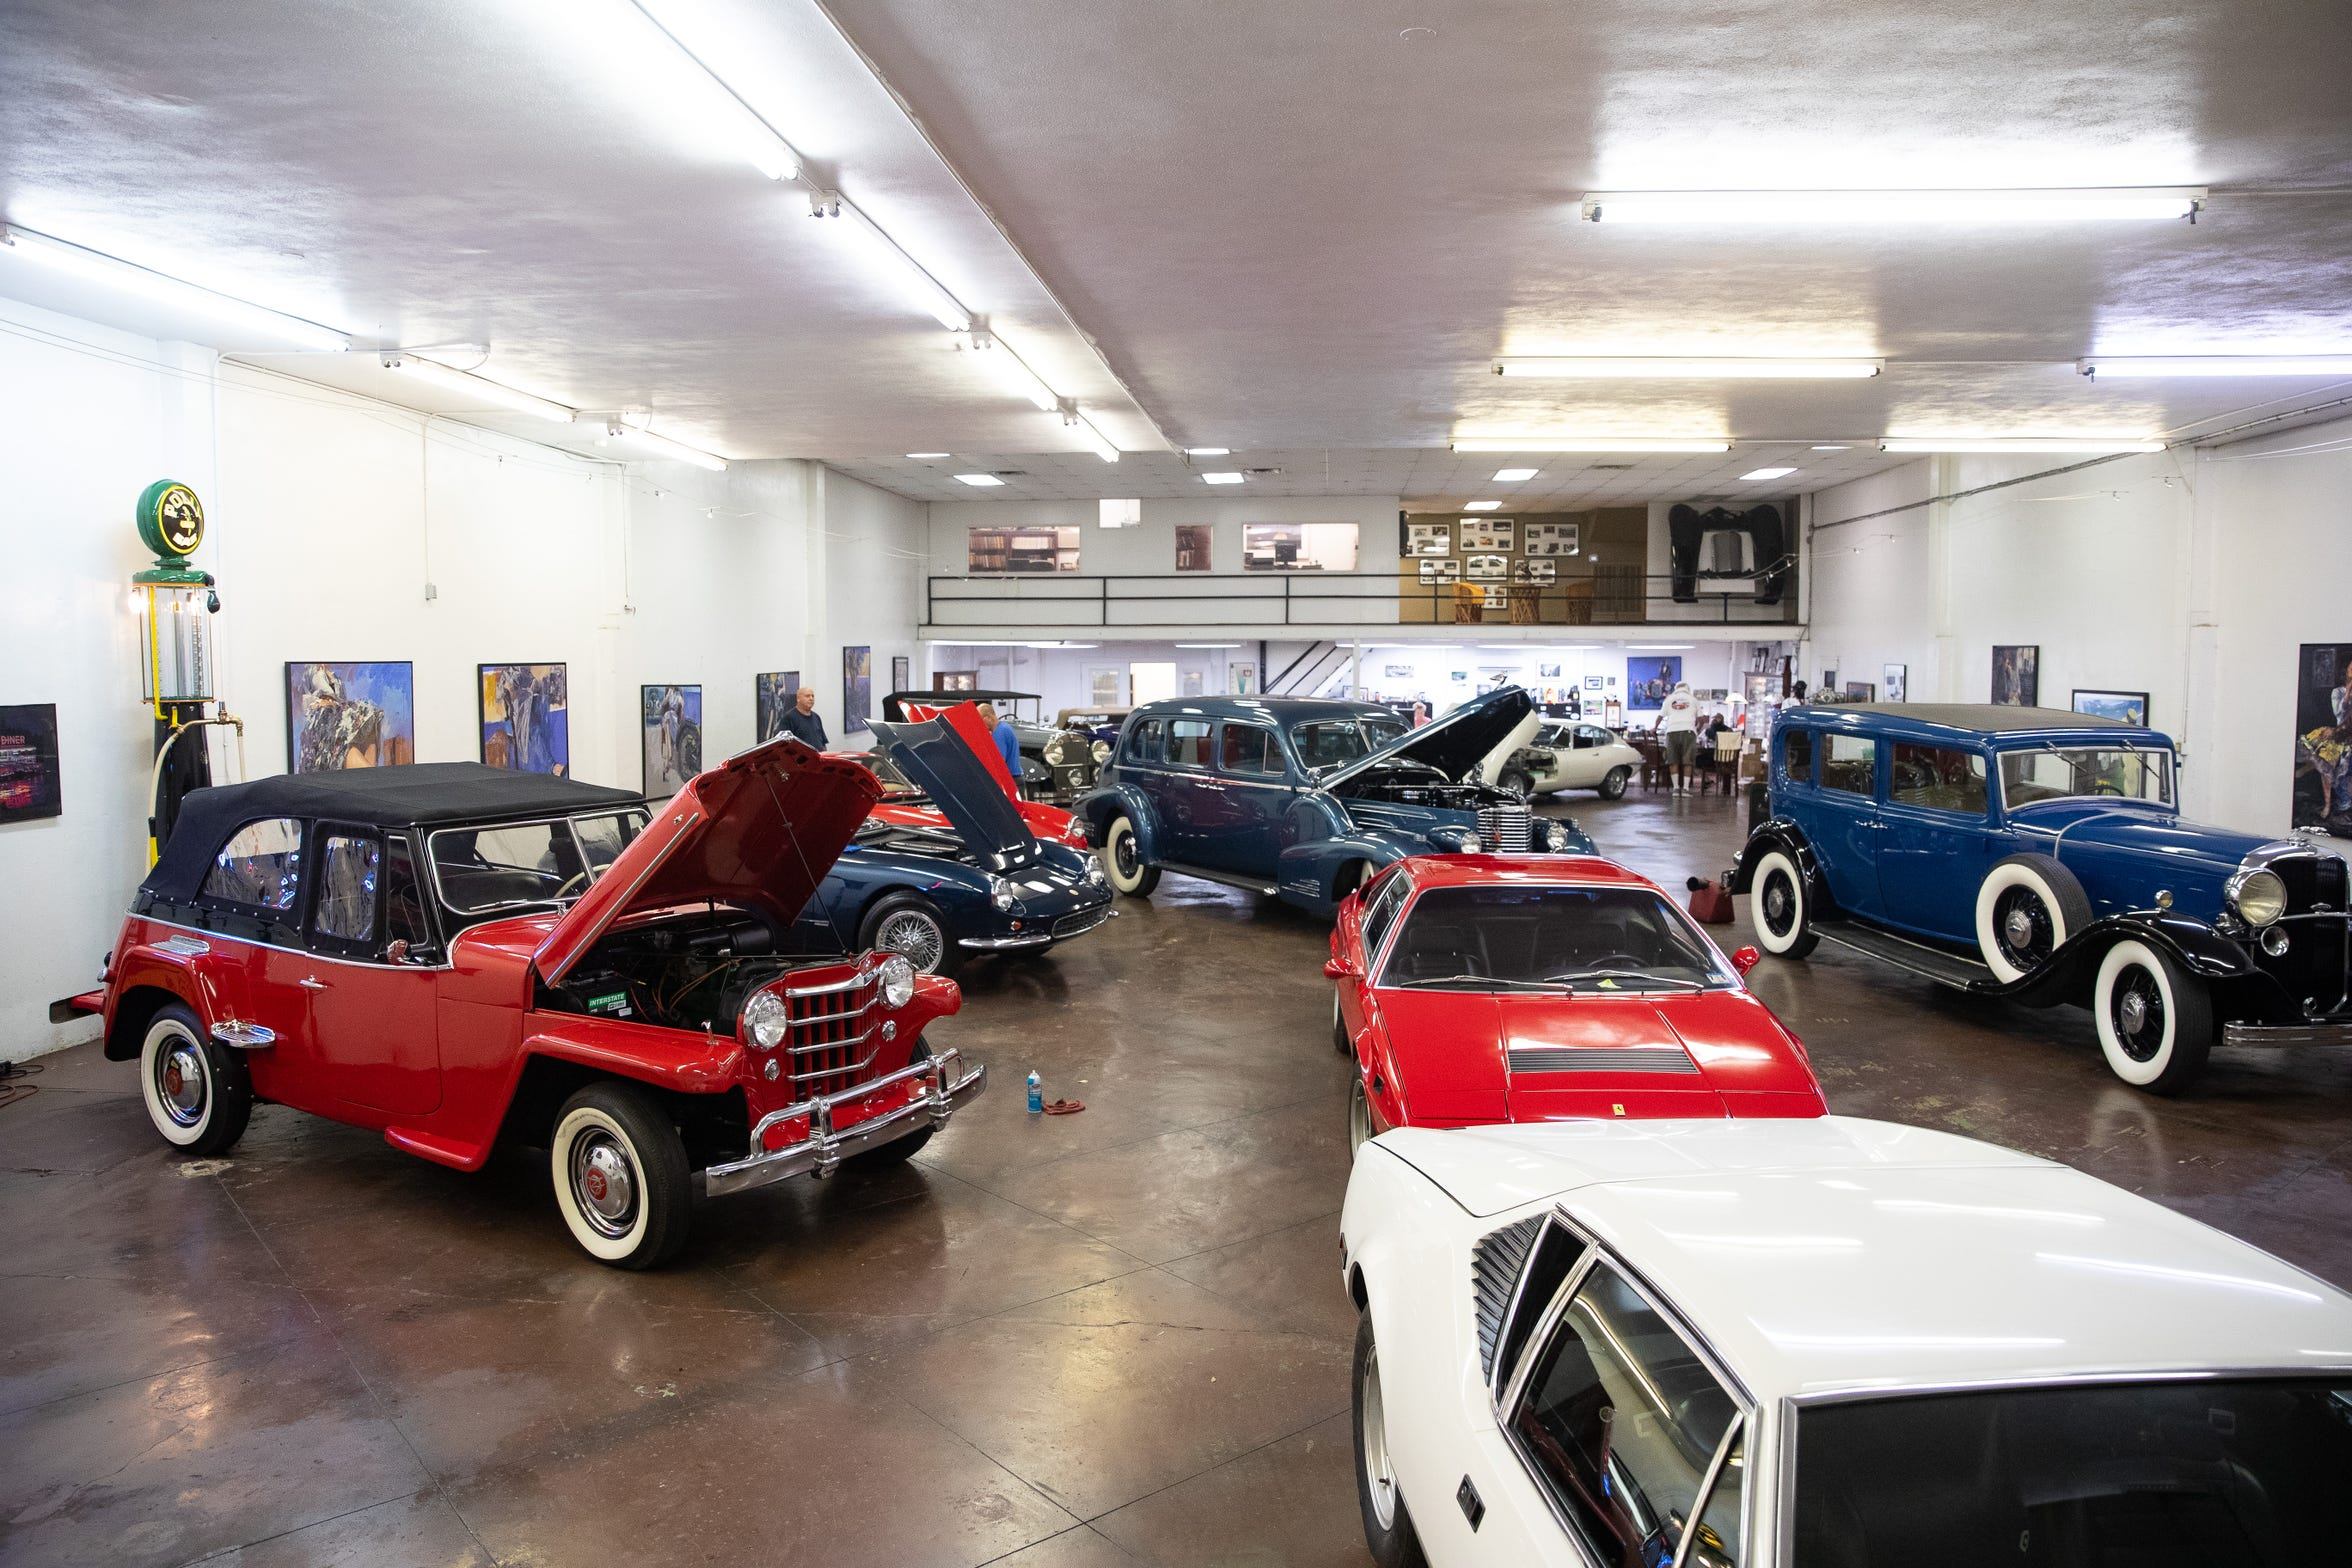 Cars are prepared for an auction of more than 200 cars on Oct. 4-5 at American Bank Center.